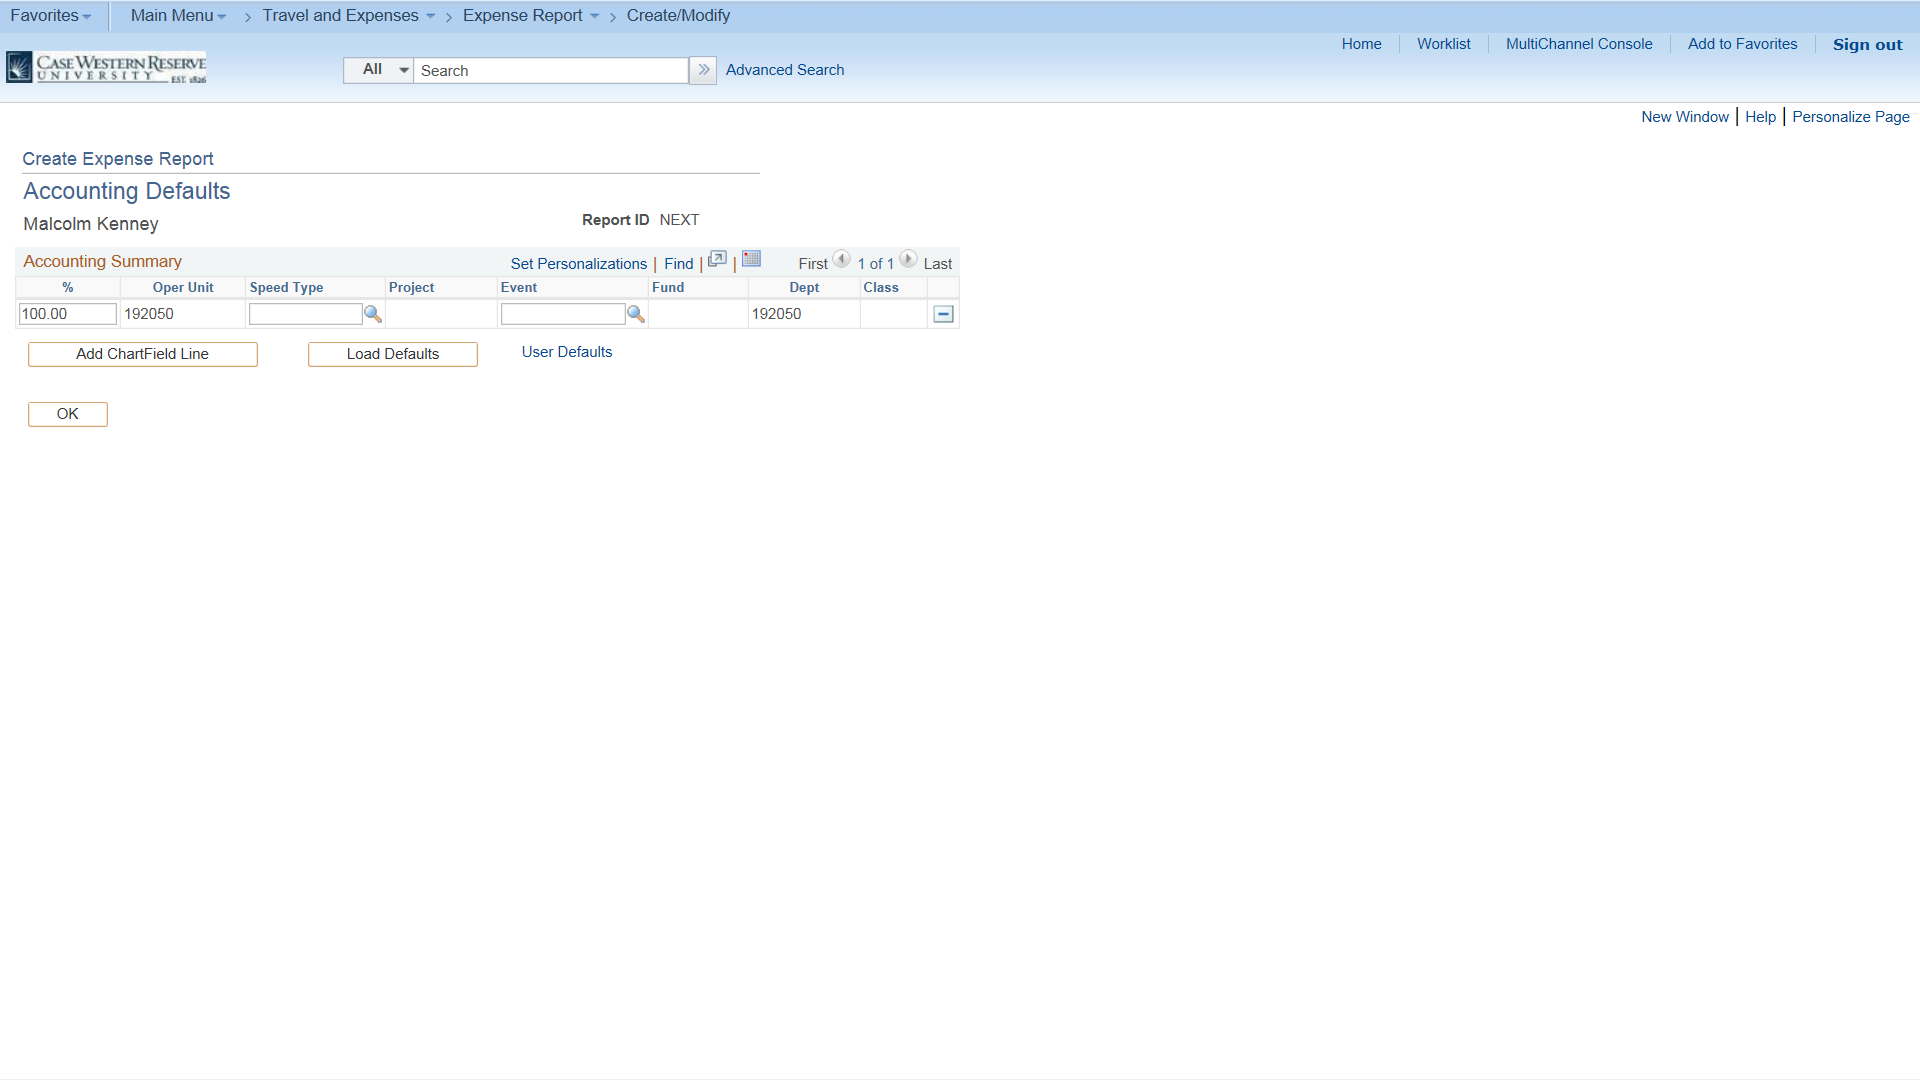 PeopleSoft Financials screen shot displaying the Account Defaults form